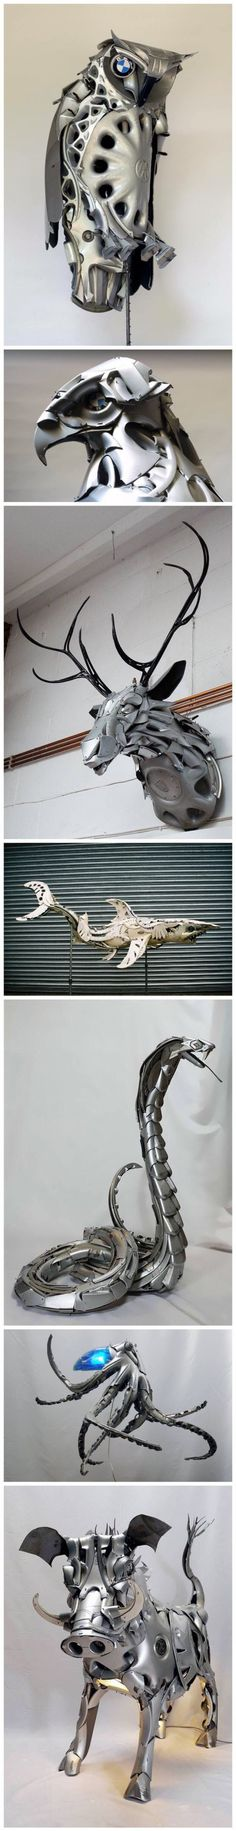 Hubcaps Turned into Animals. Via http://www.mnn.com/lifestyle/recycling/blogs/artist-turns-hubcaps-into-whimsical-creatures